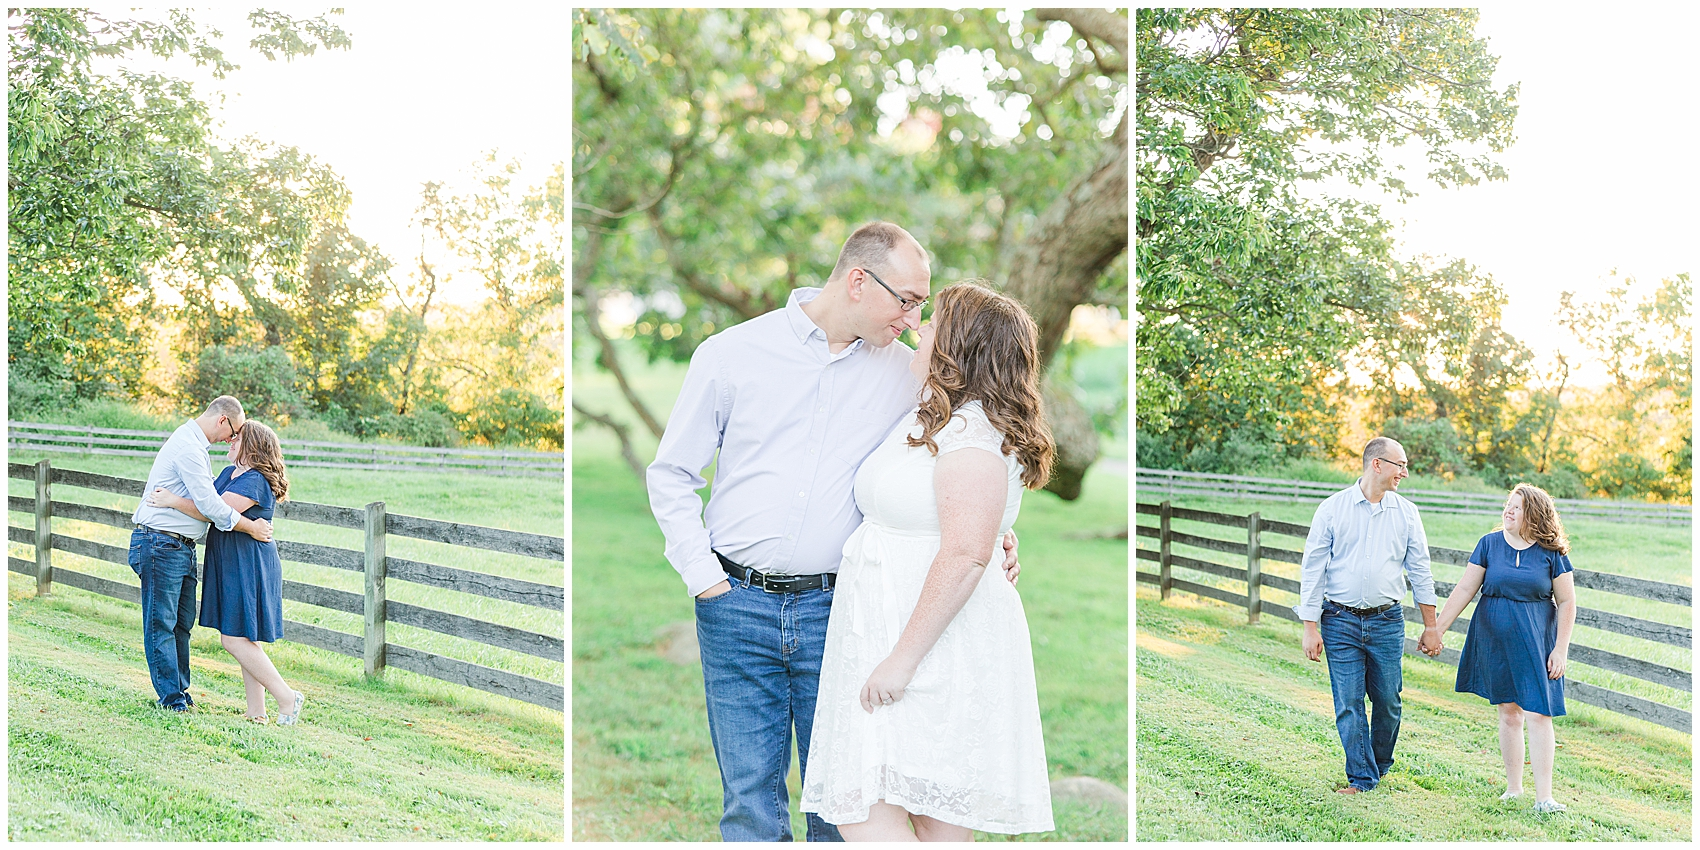 chester-county-pa-engagement-photographer9.jpg